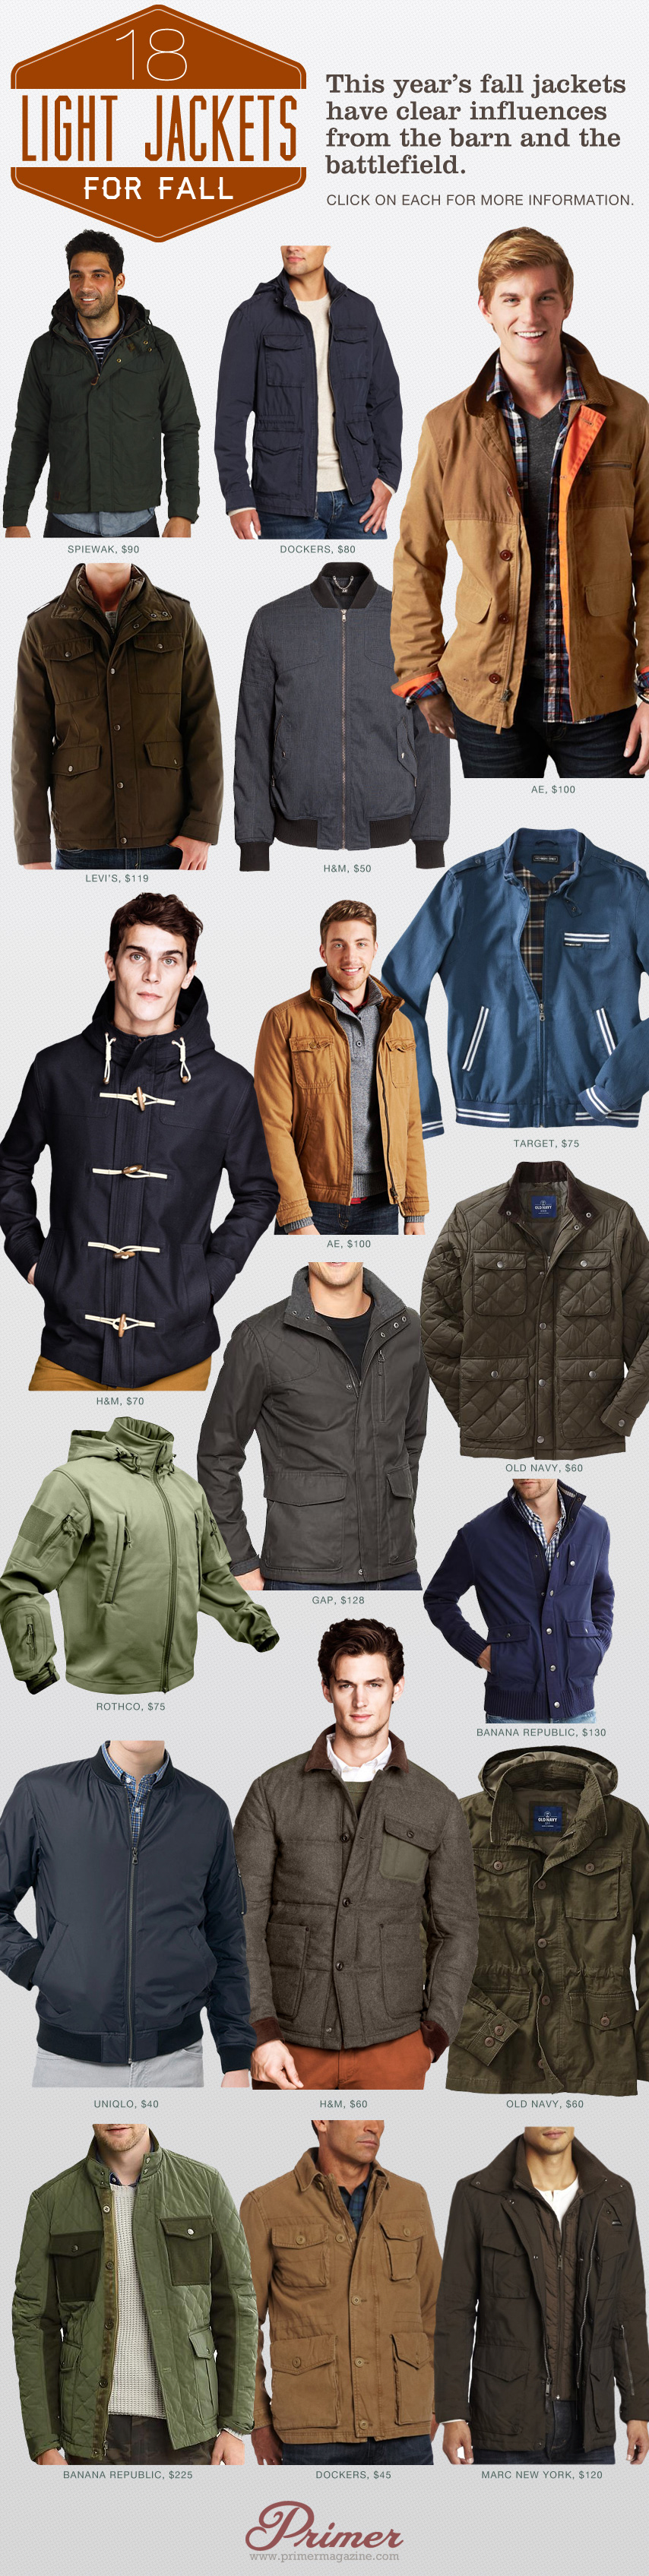 A collage of 18 light jackets for fall